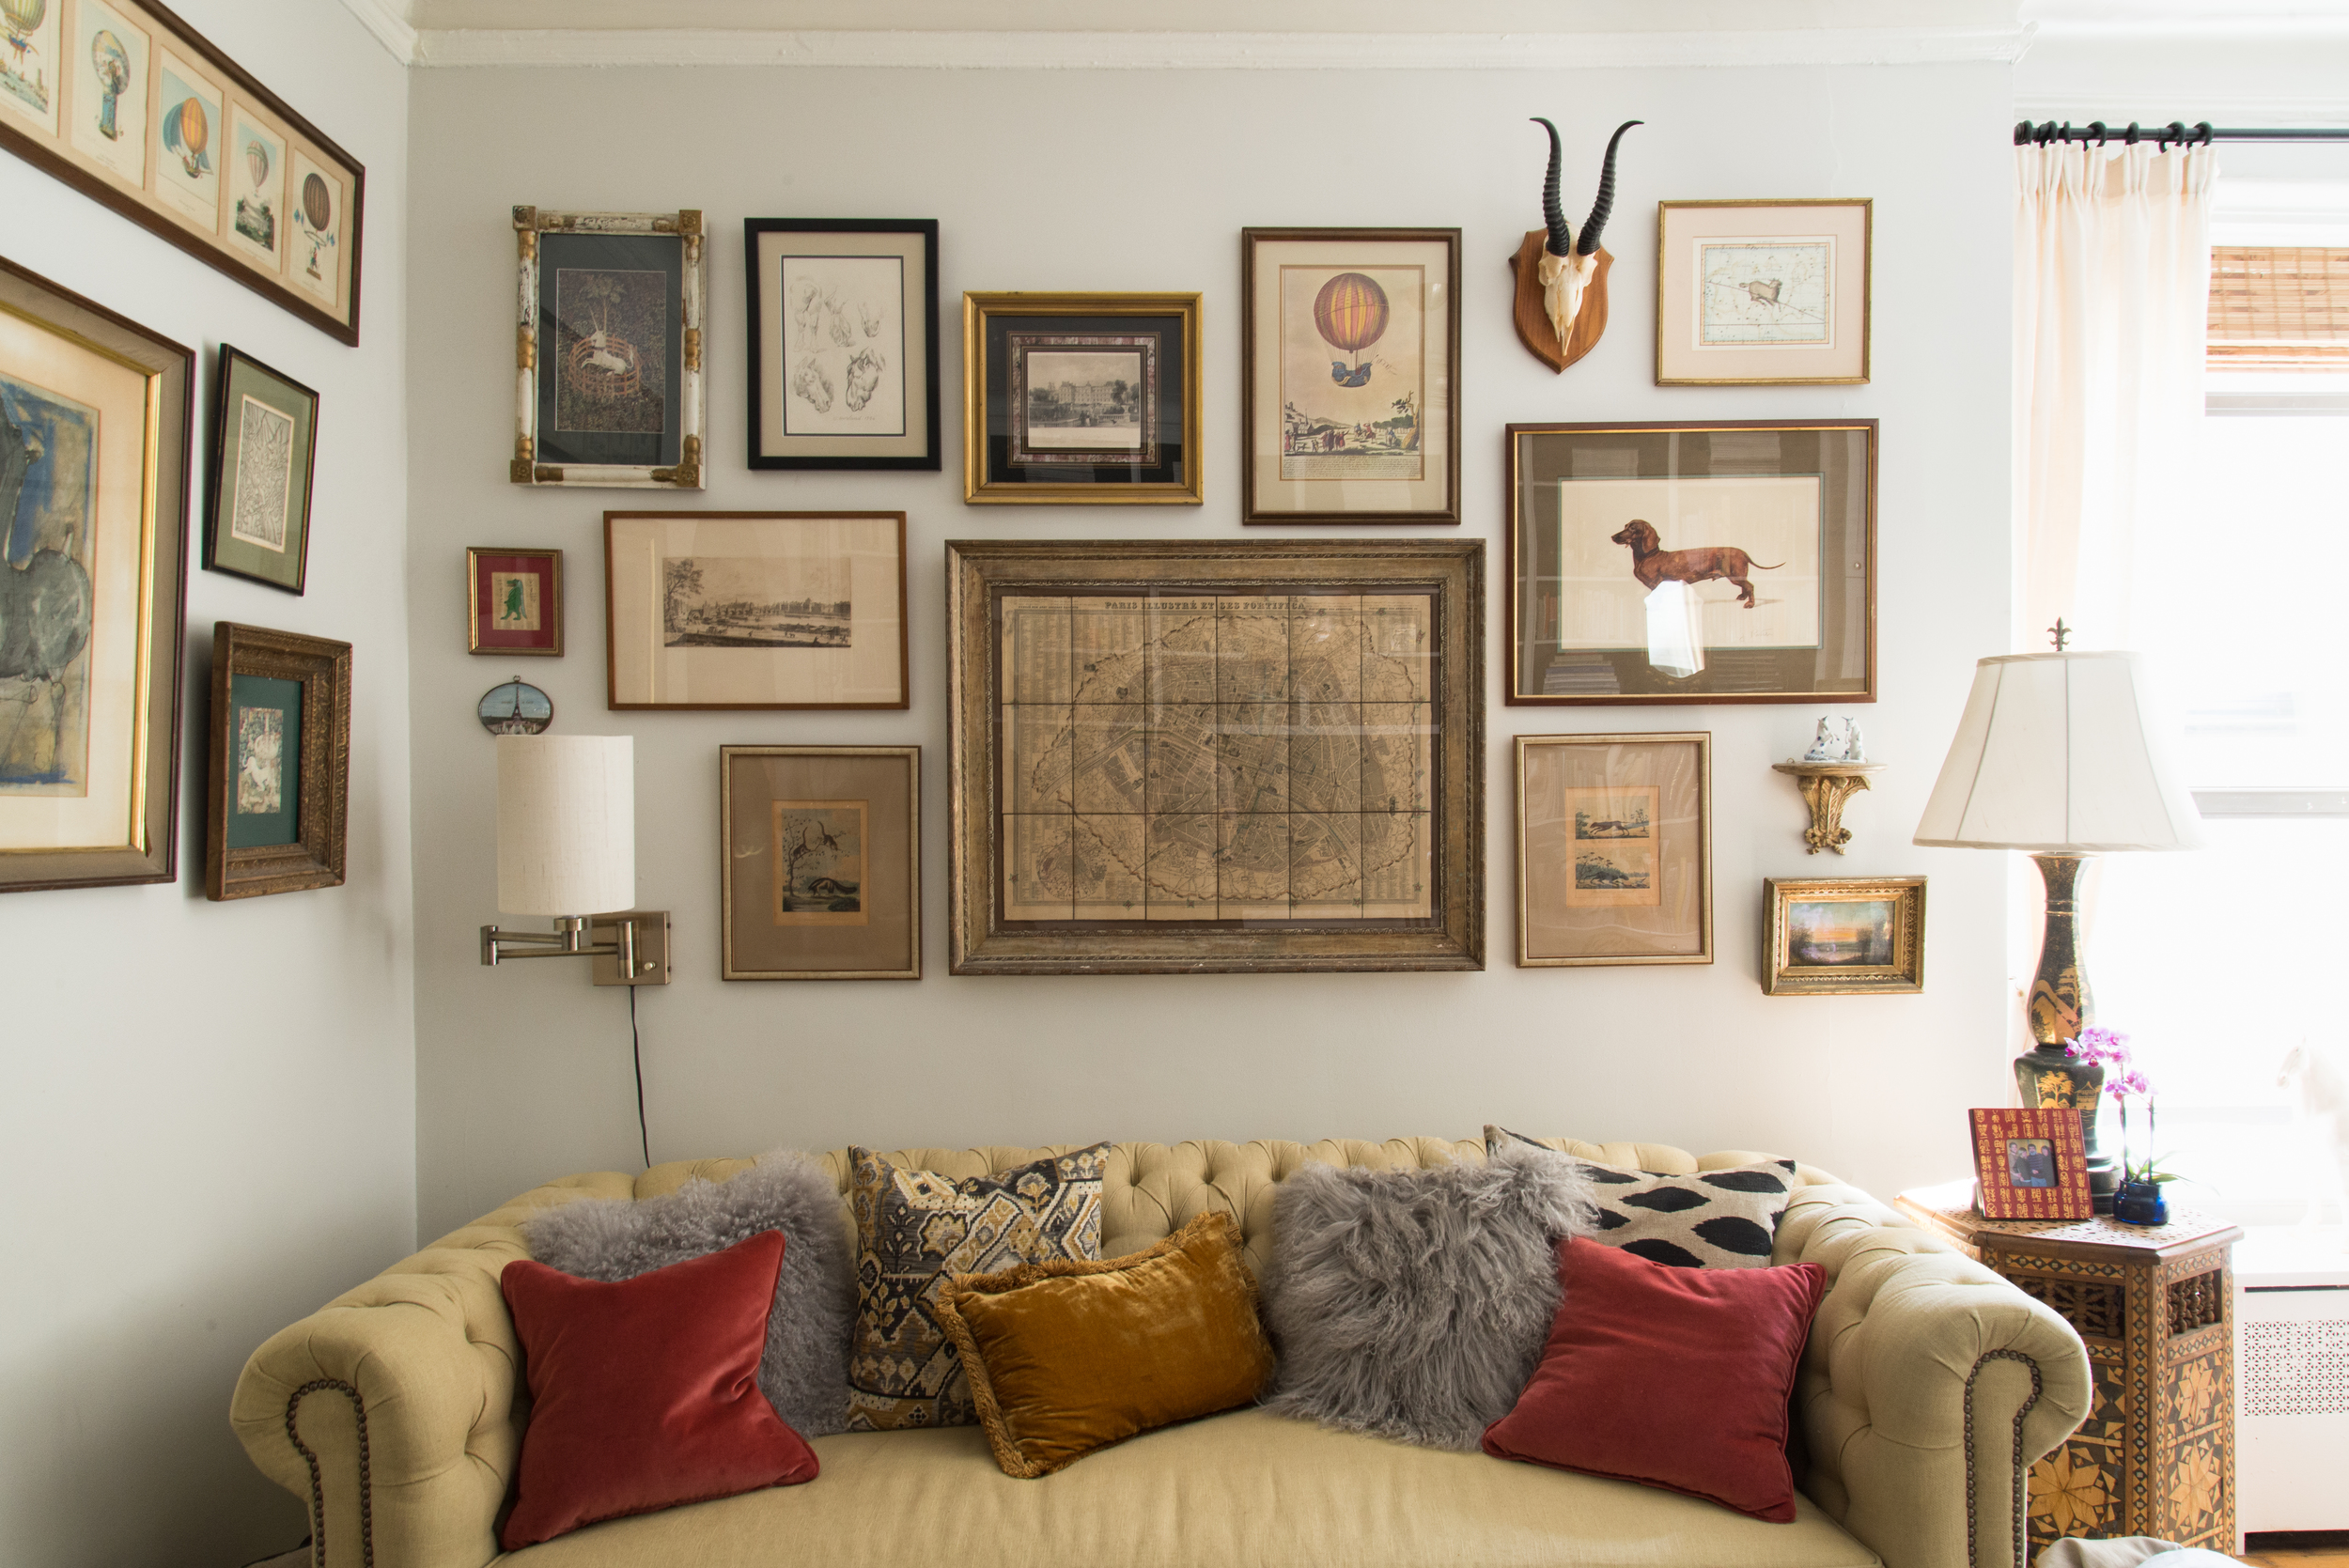 my favorite gallery wall in the home that holds my favorite prints / that sofa doubles as a guest bed.